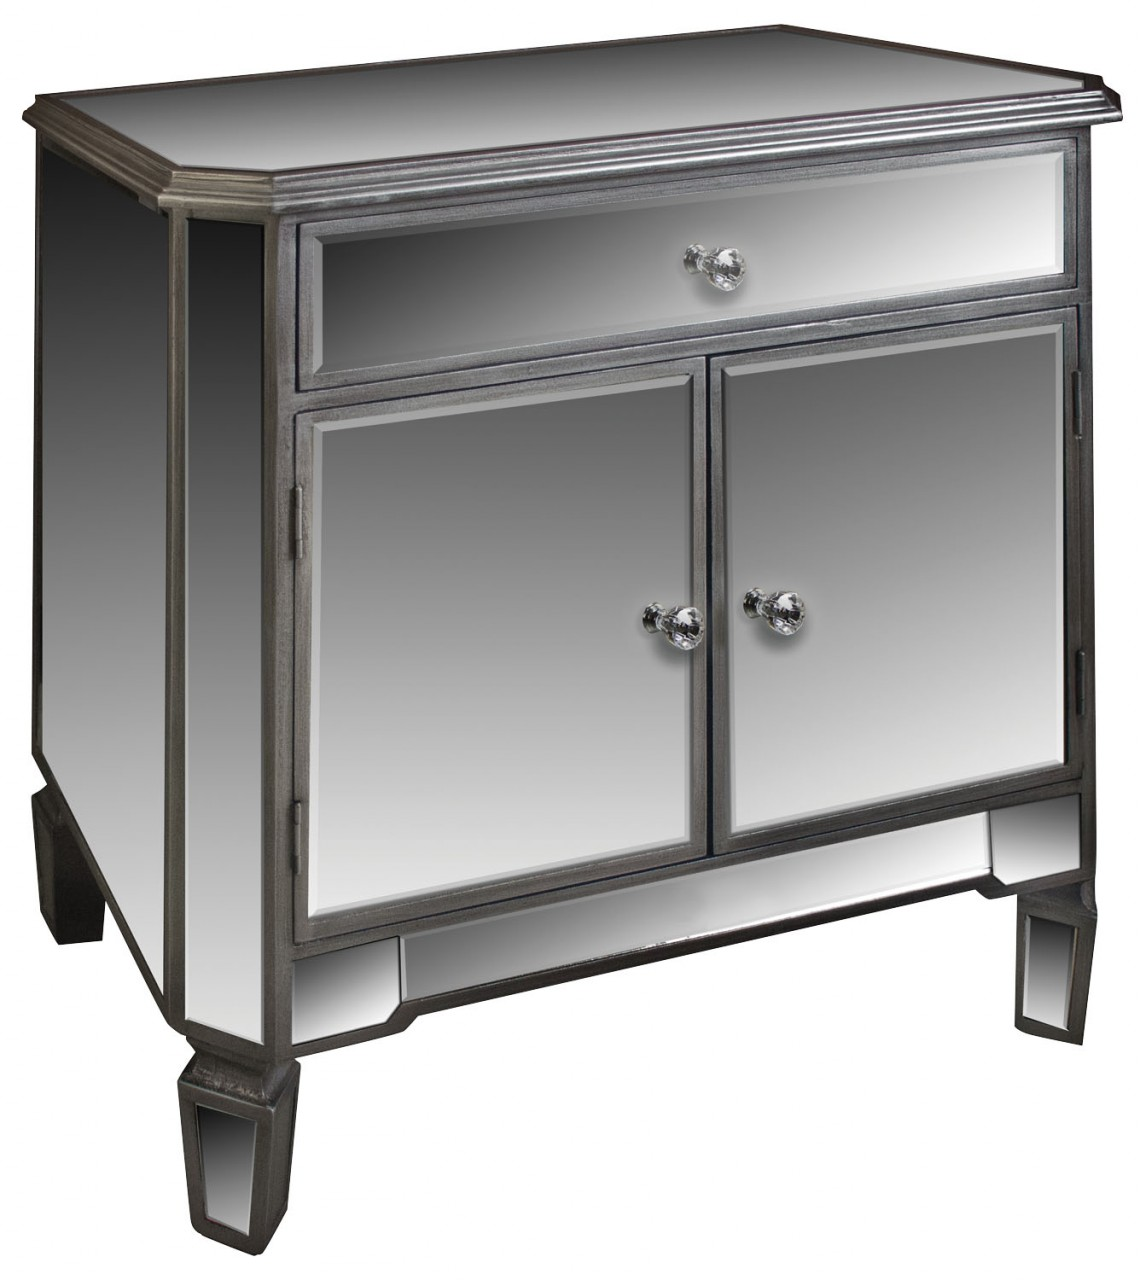 Silver Mirrored 1 Drawer Sideboard Cupboard Unit - Angelina Range